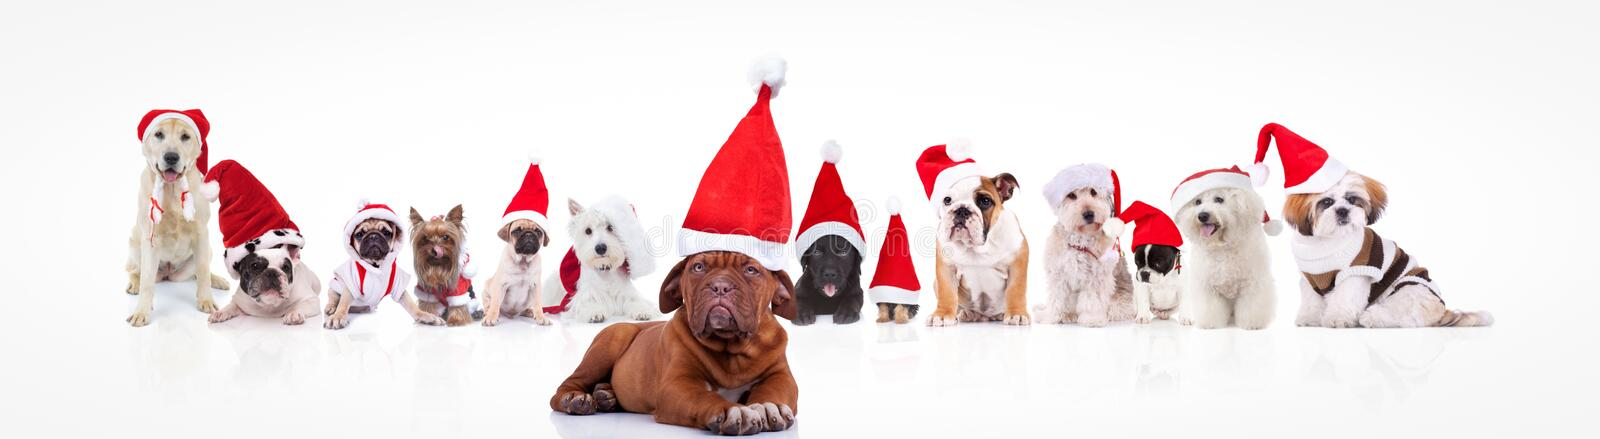 French mastiff leading a large group of santa claus dogs. Large group of dogs wearing santa claus hats or costumes with french mastiff in front of them on white stock photos